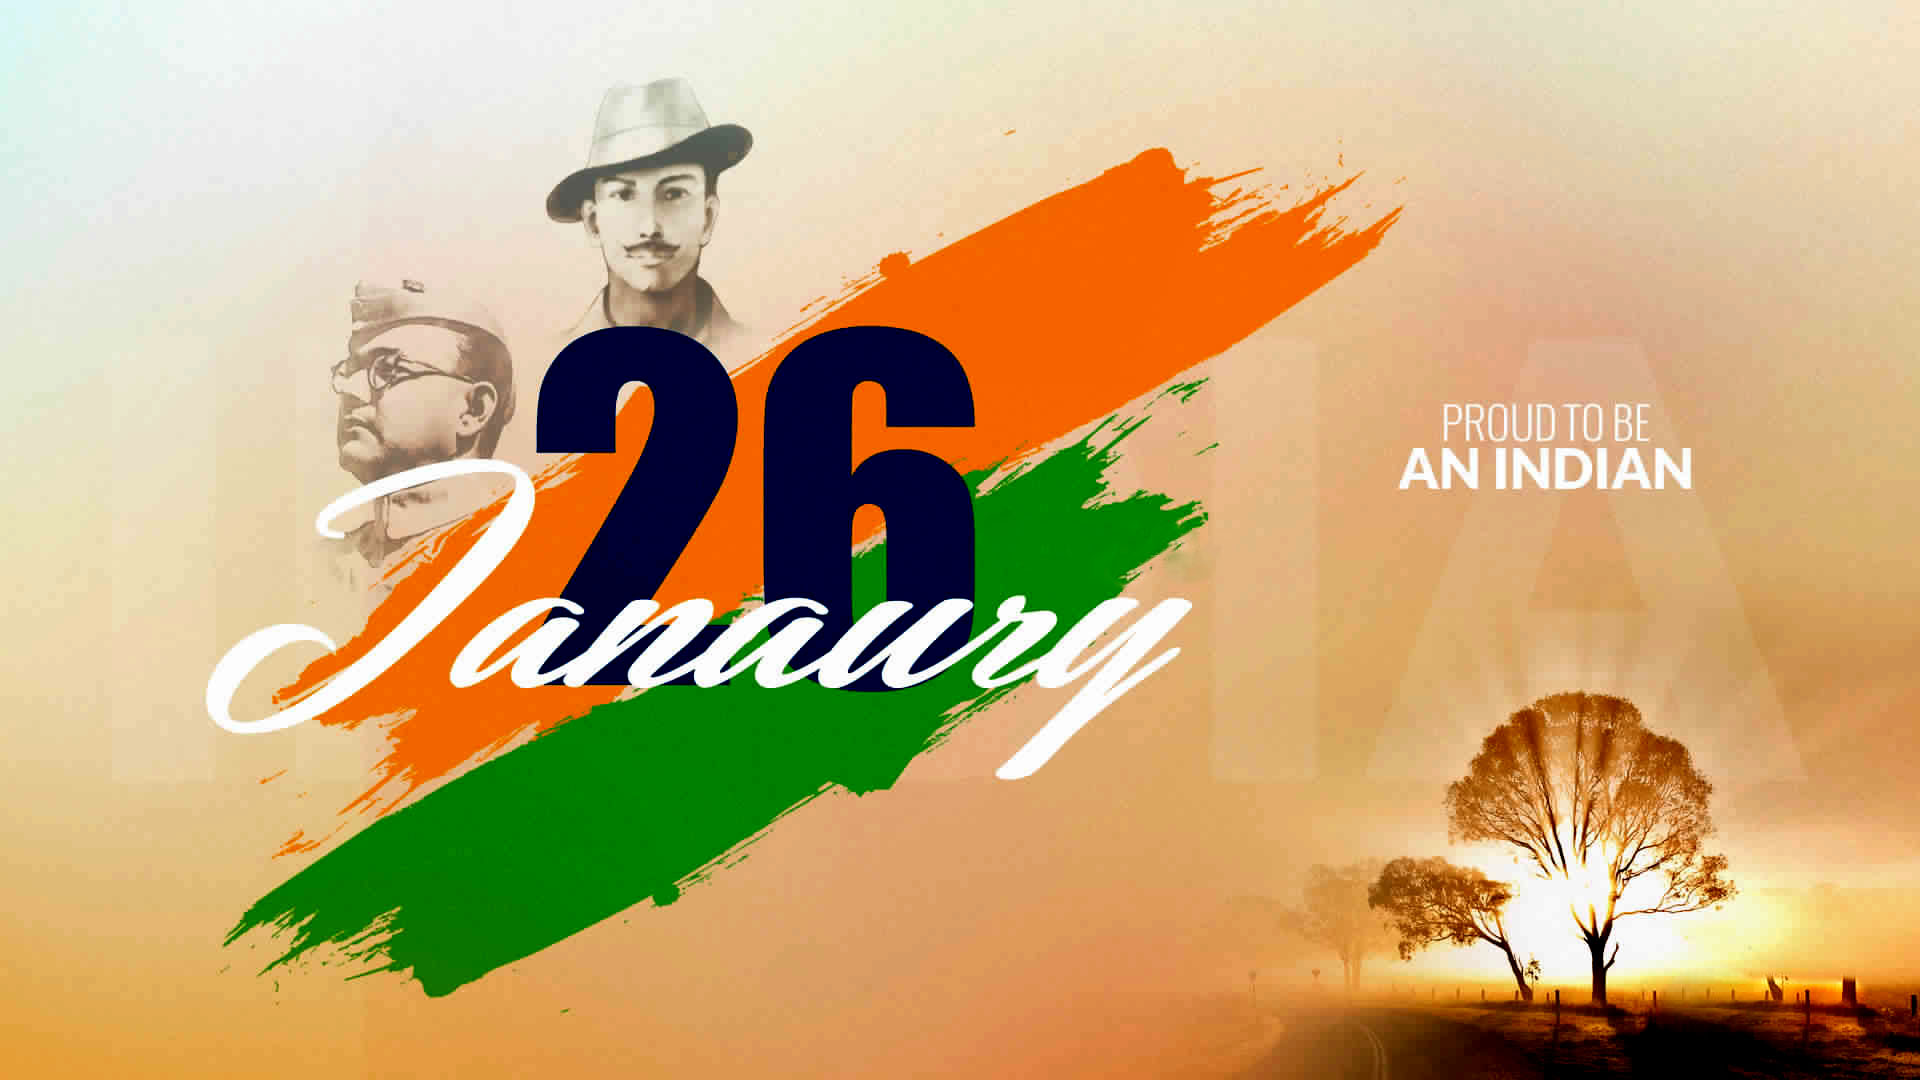 Subhash Chandra Bose Republic Day Wallpaper 2013